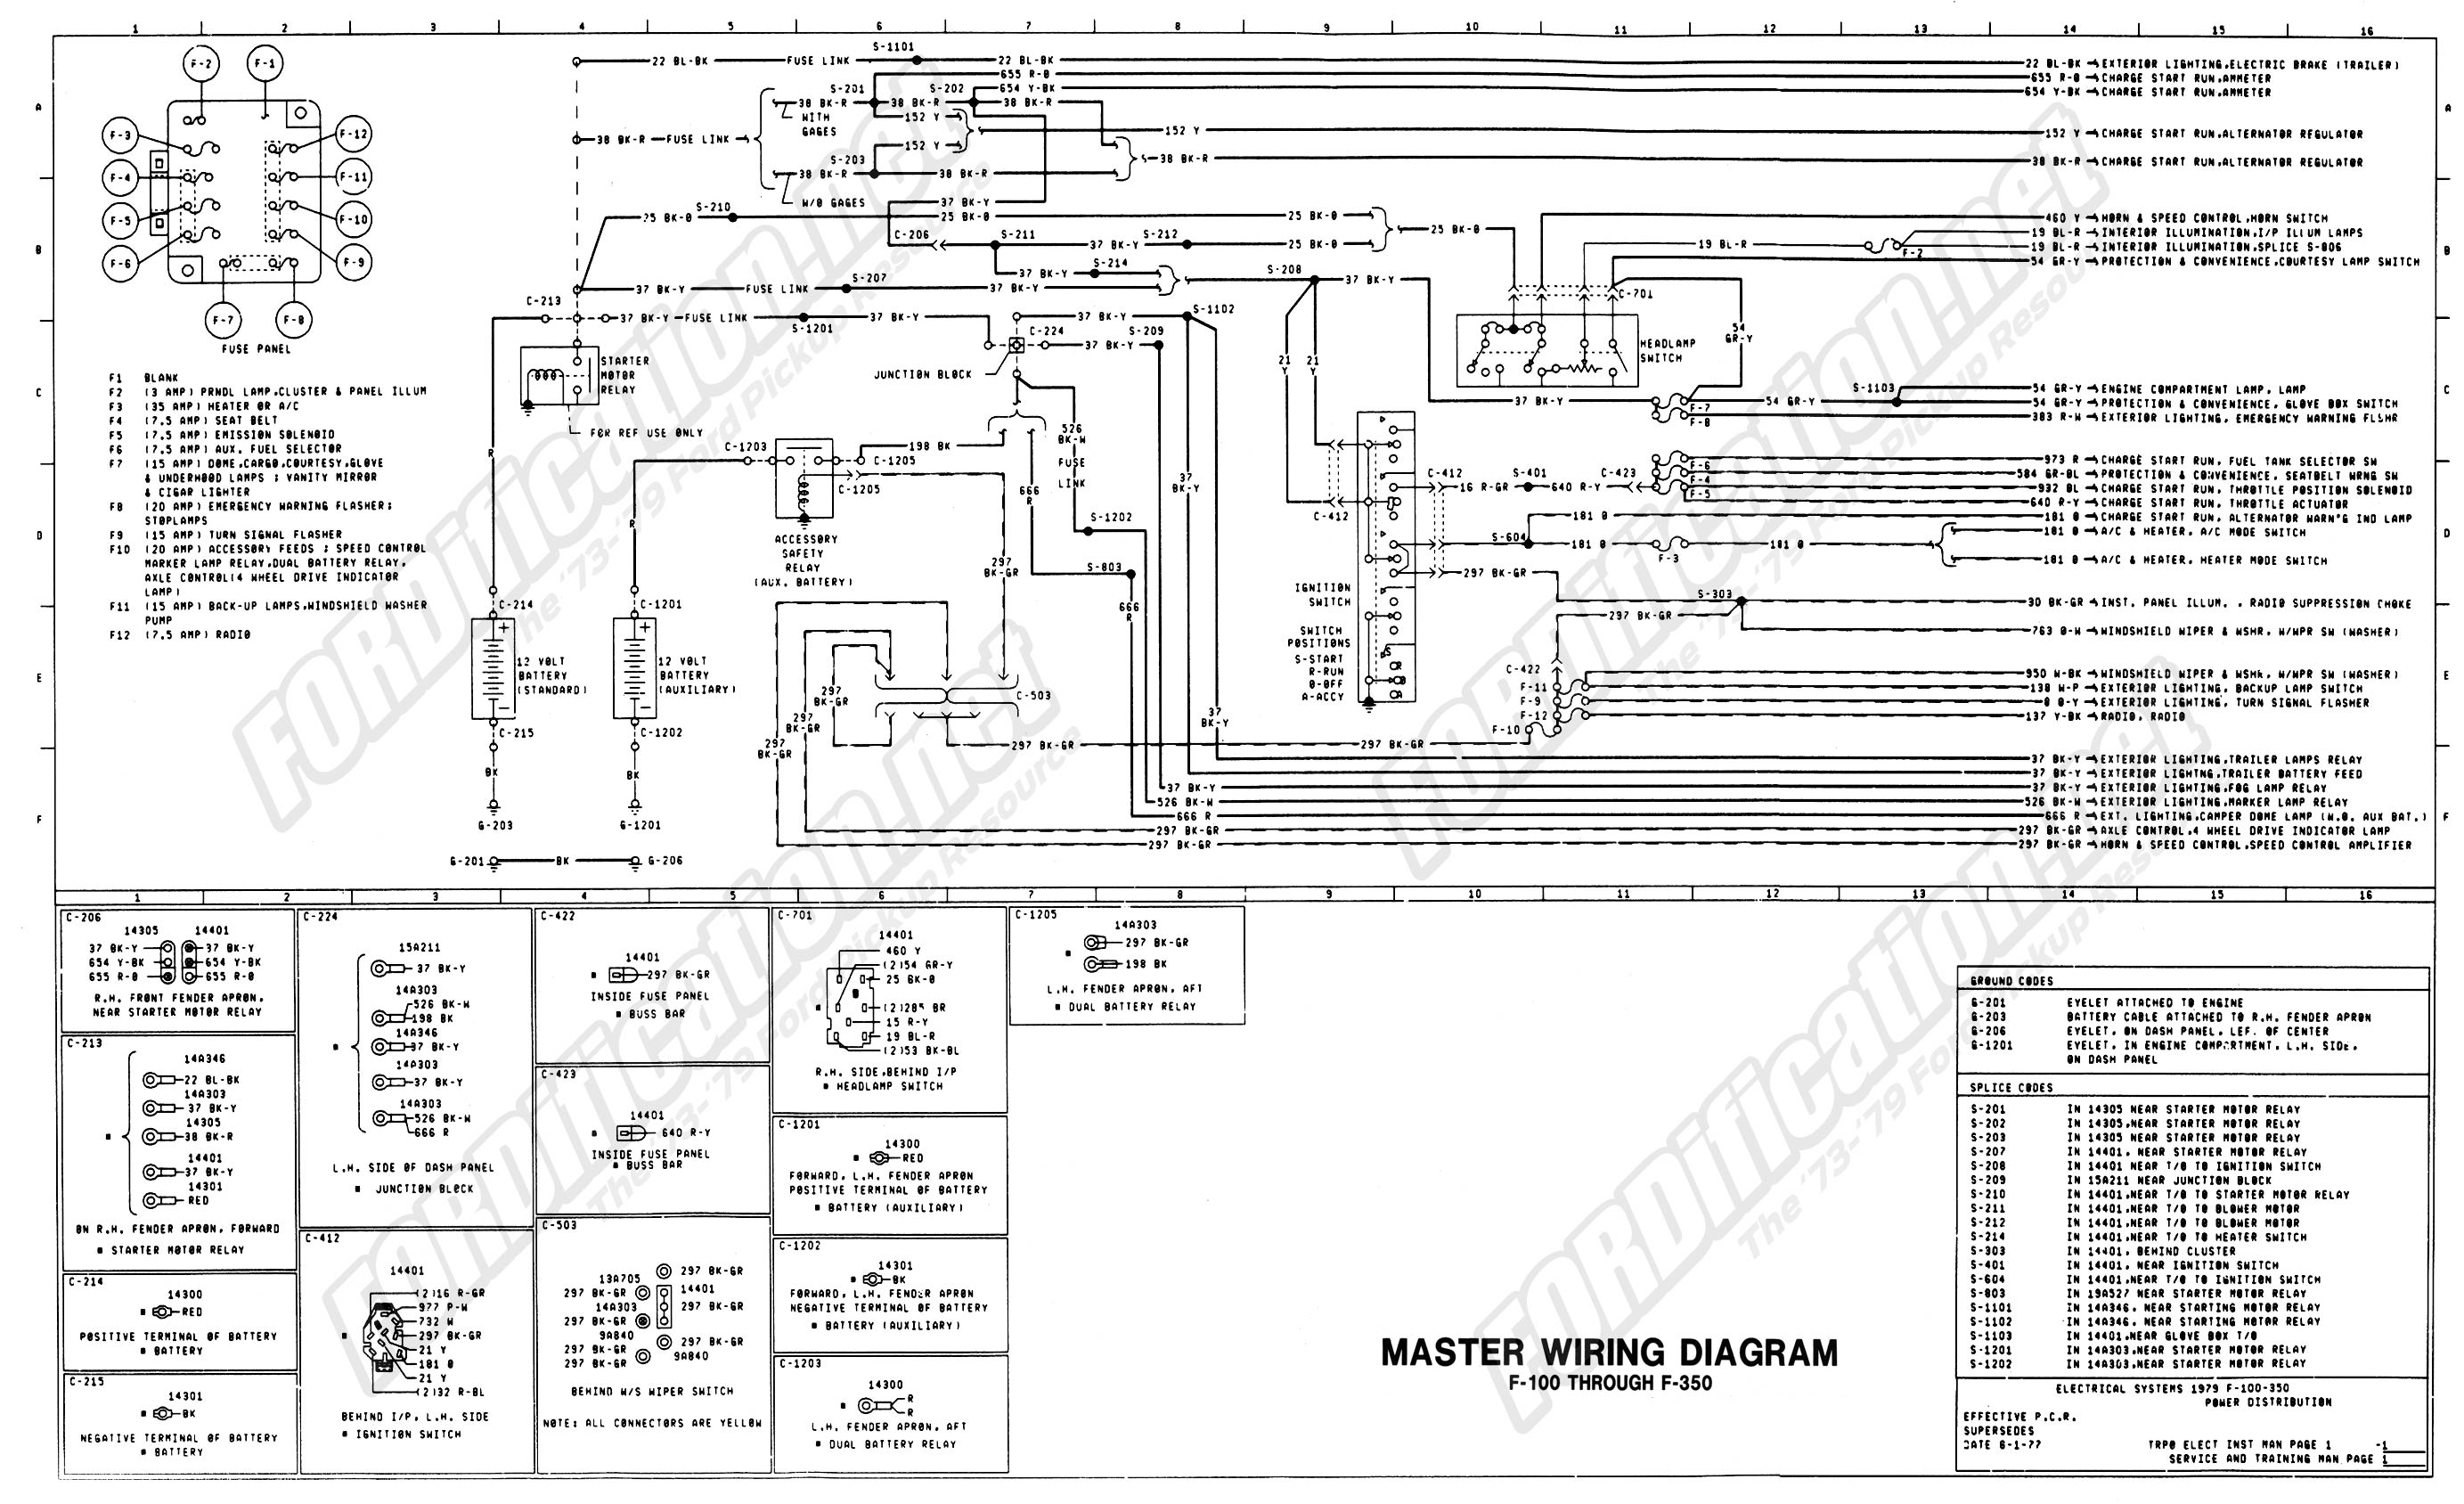 1999 sterling dump truck wiring diagrams